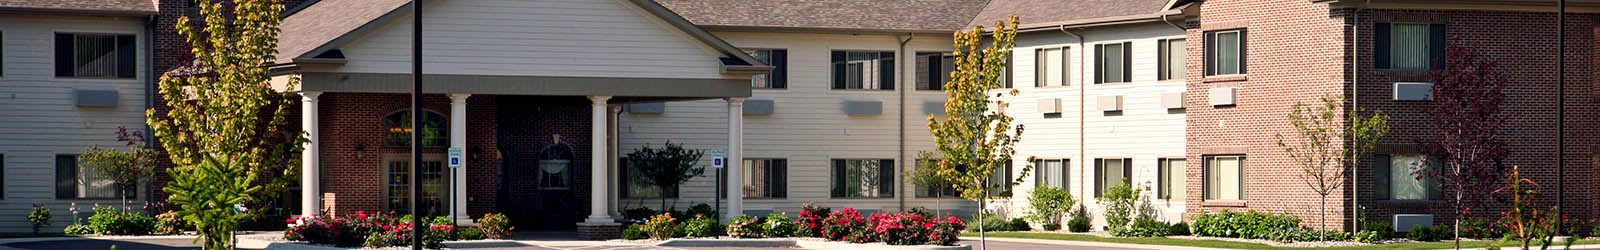 Senior living offering memory care in Bonita Springs FL